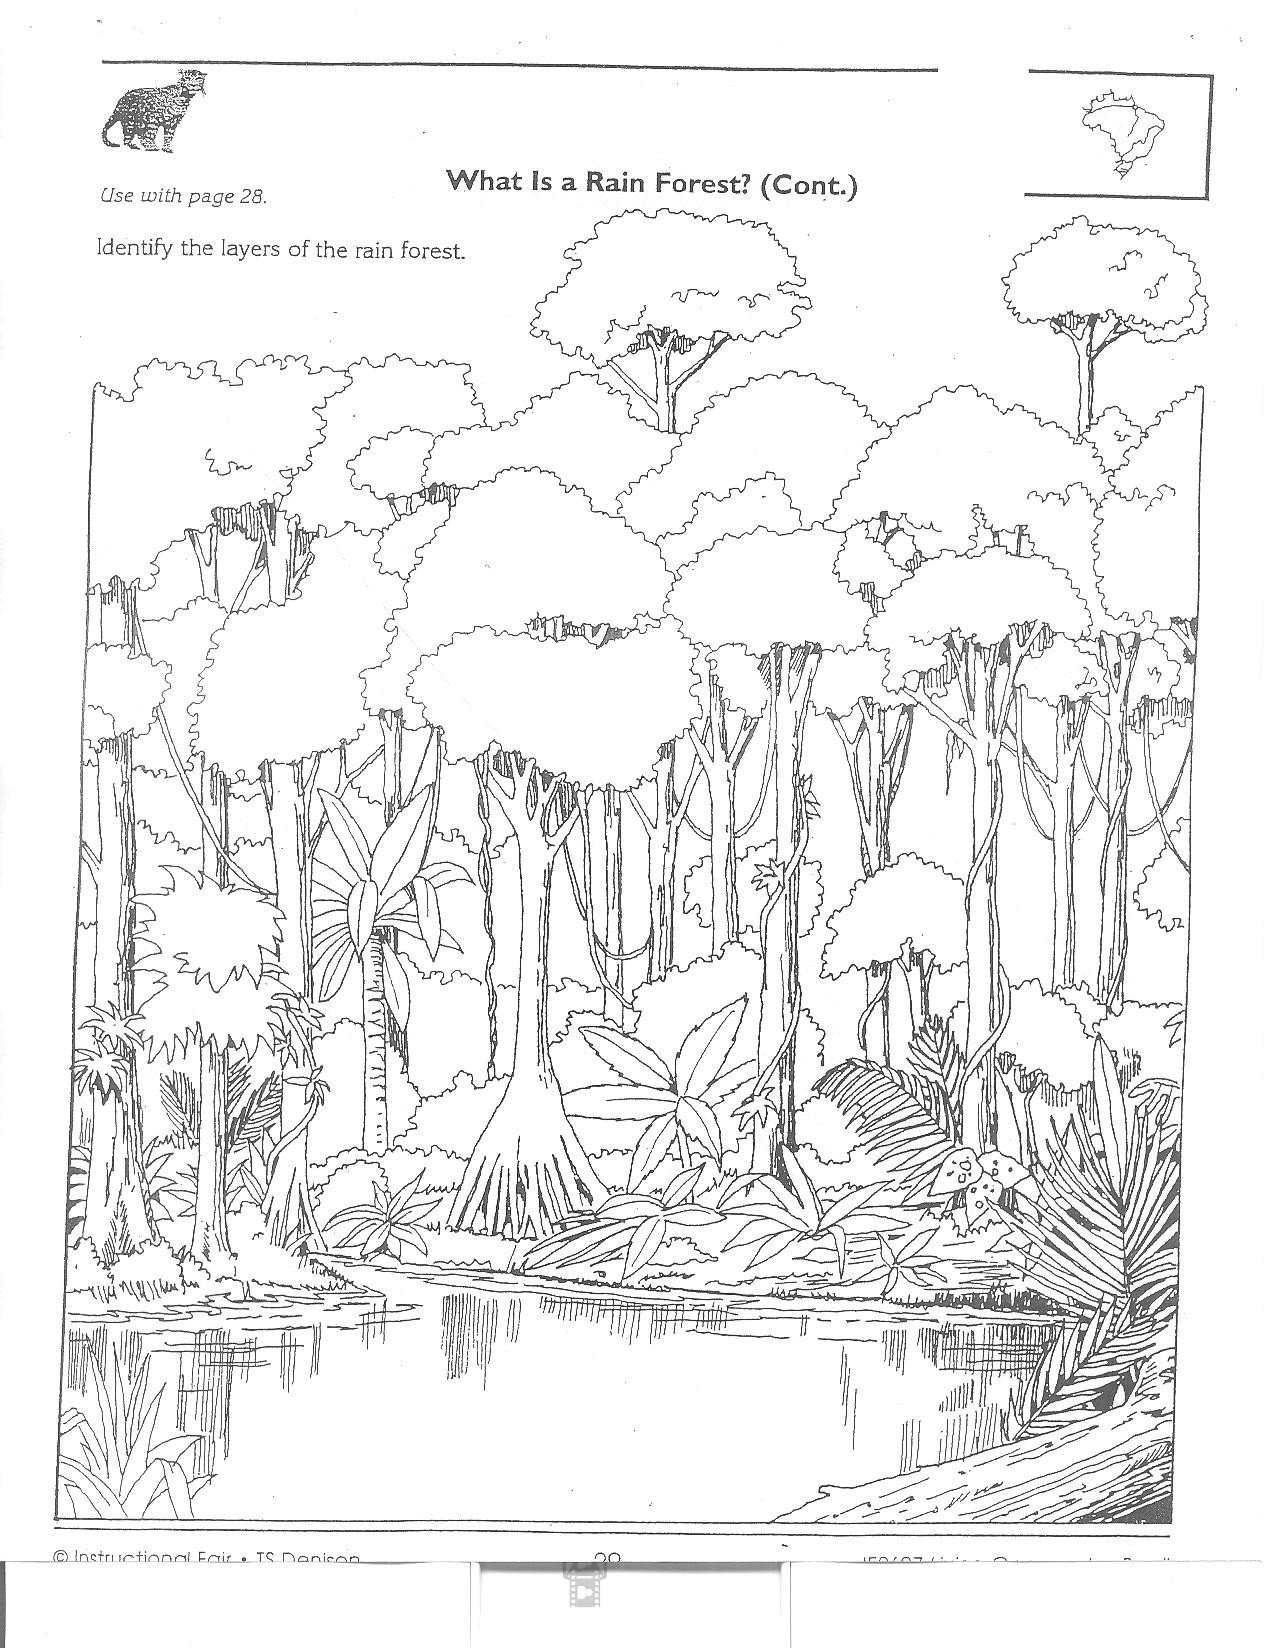 Rainforest Worksheets Free Rainforest Layers Worksheet